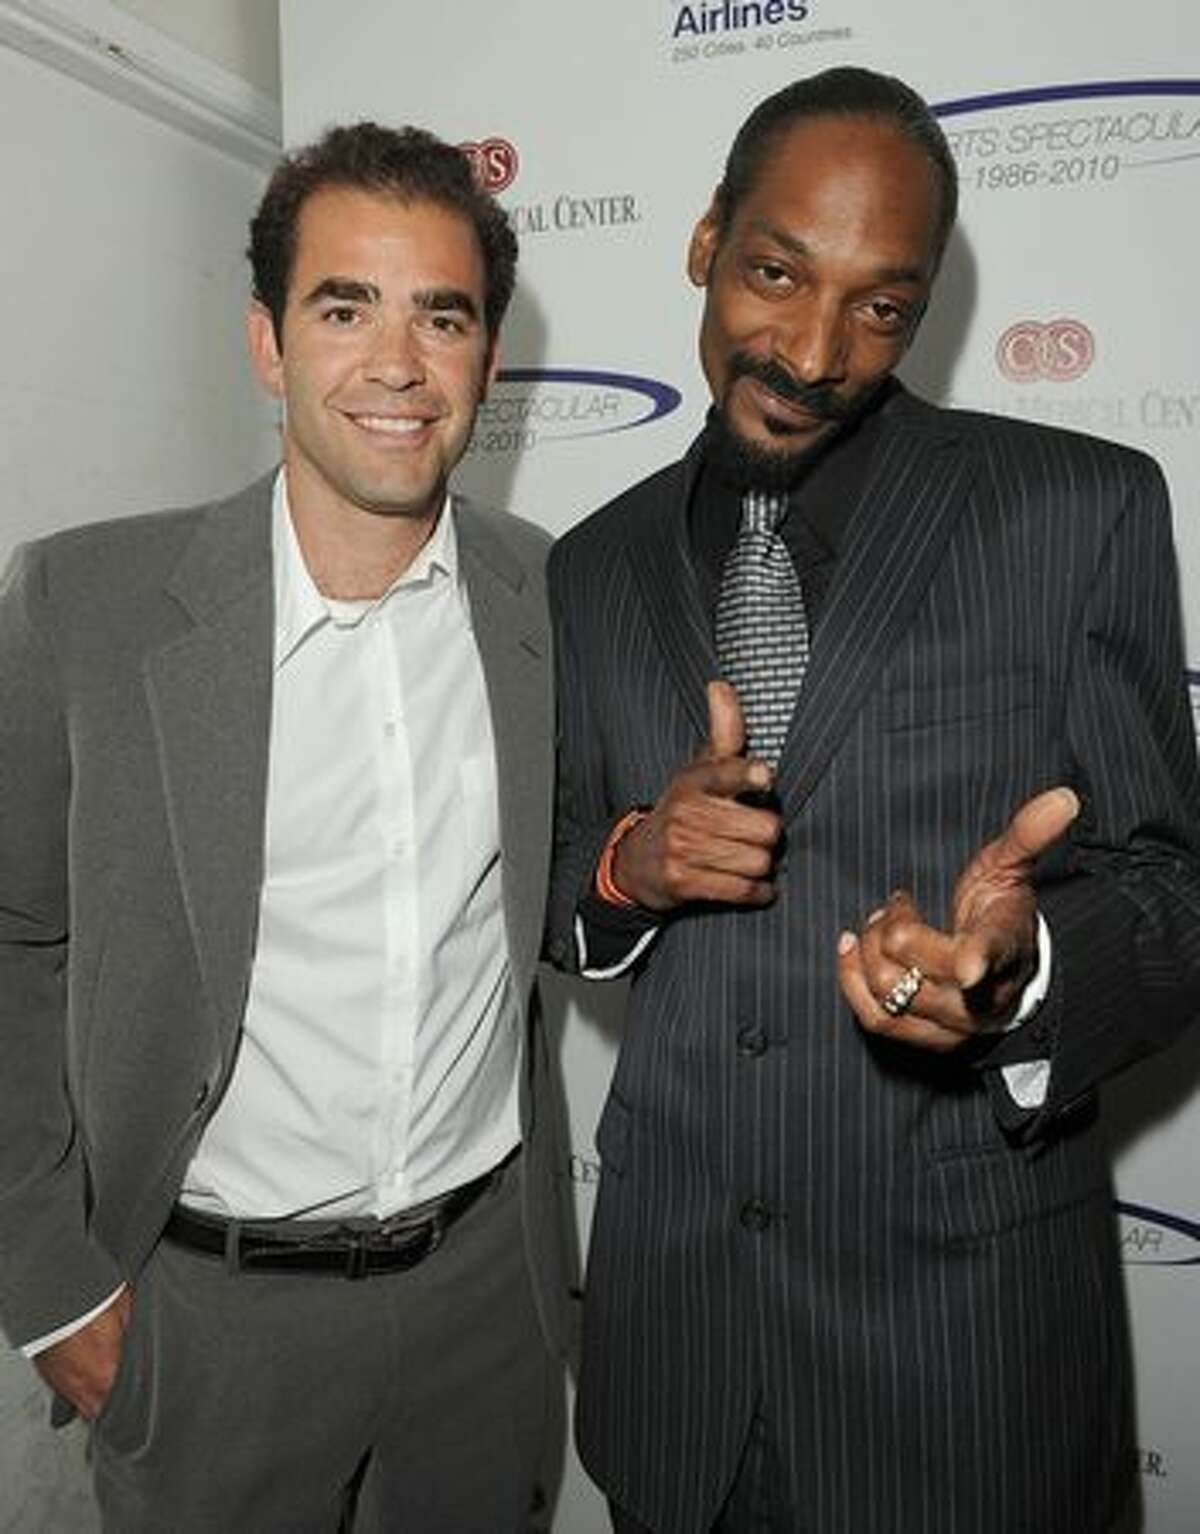 Tennis player Pete Sampras and singer Snoop Dogg pose backstage at the 25th Anniversary Of Cedars-Sinai Sports Spectacular held at the Hyatt Regency Century Plaza Hotel.